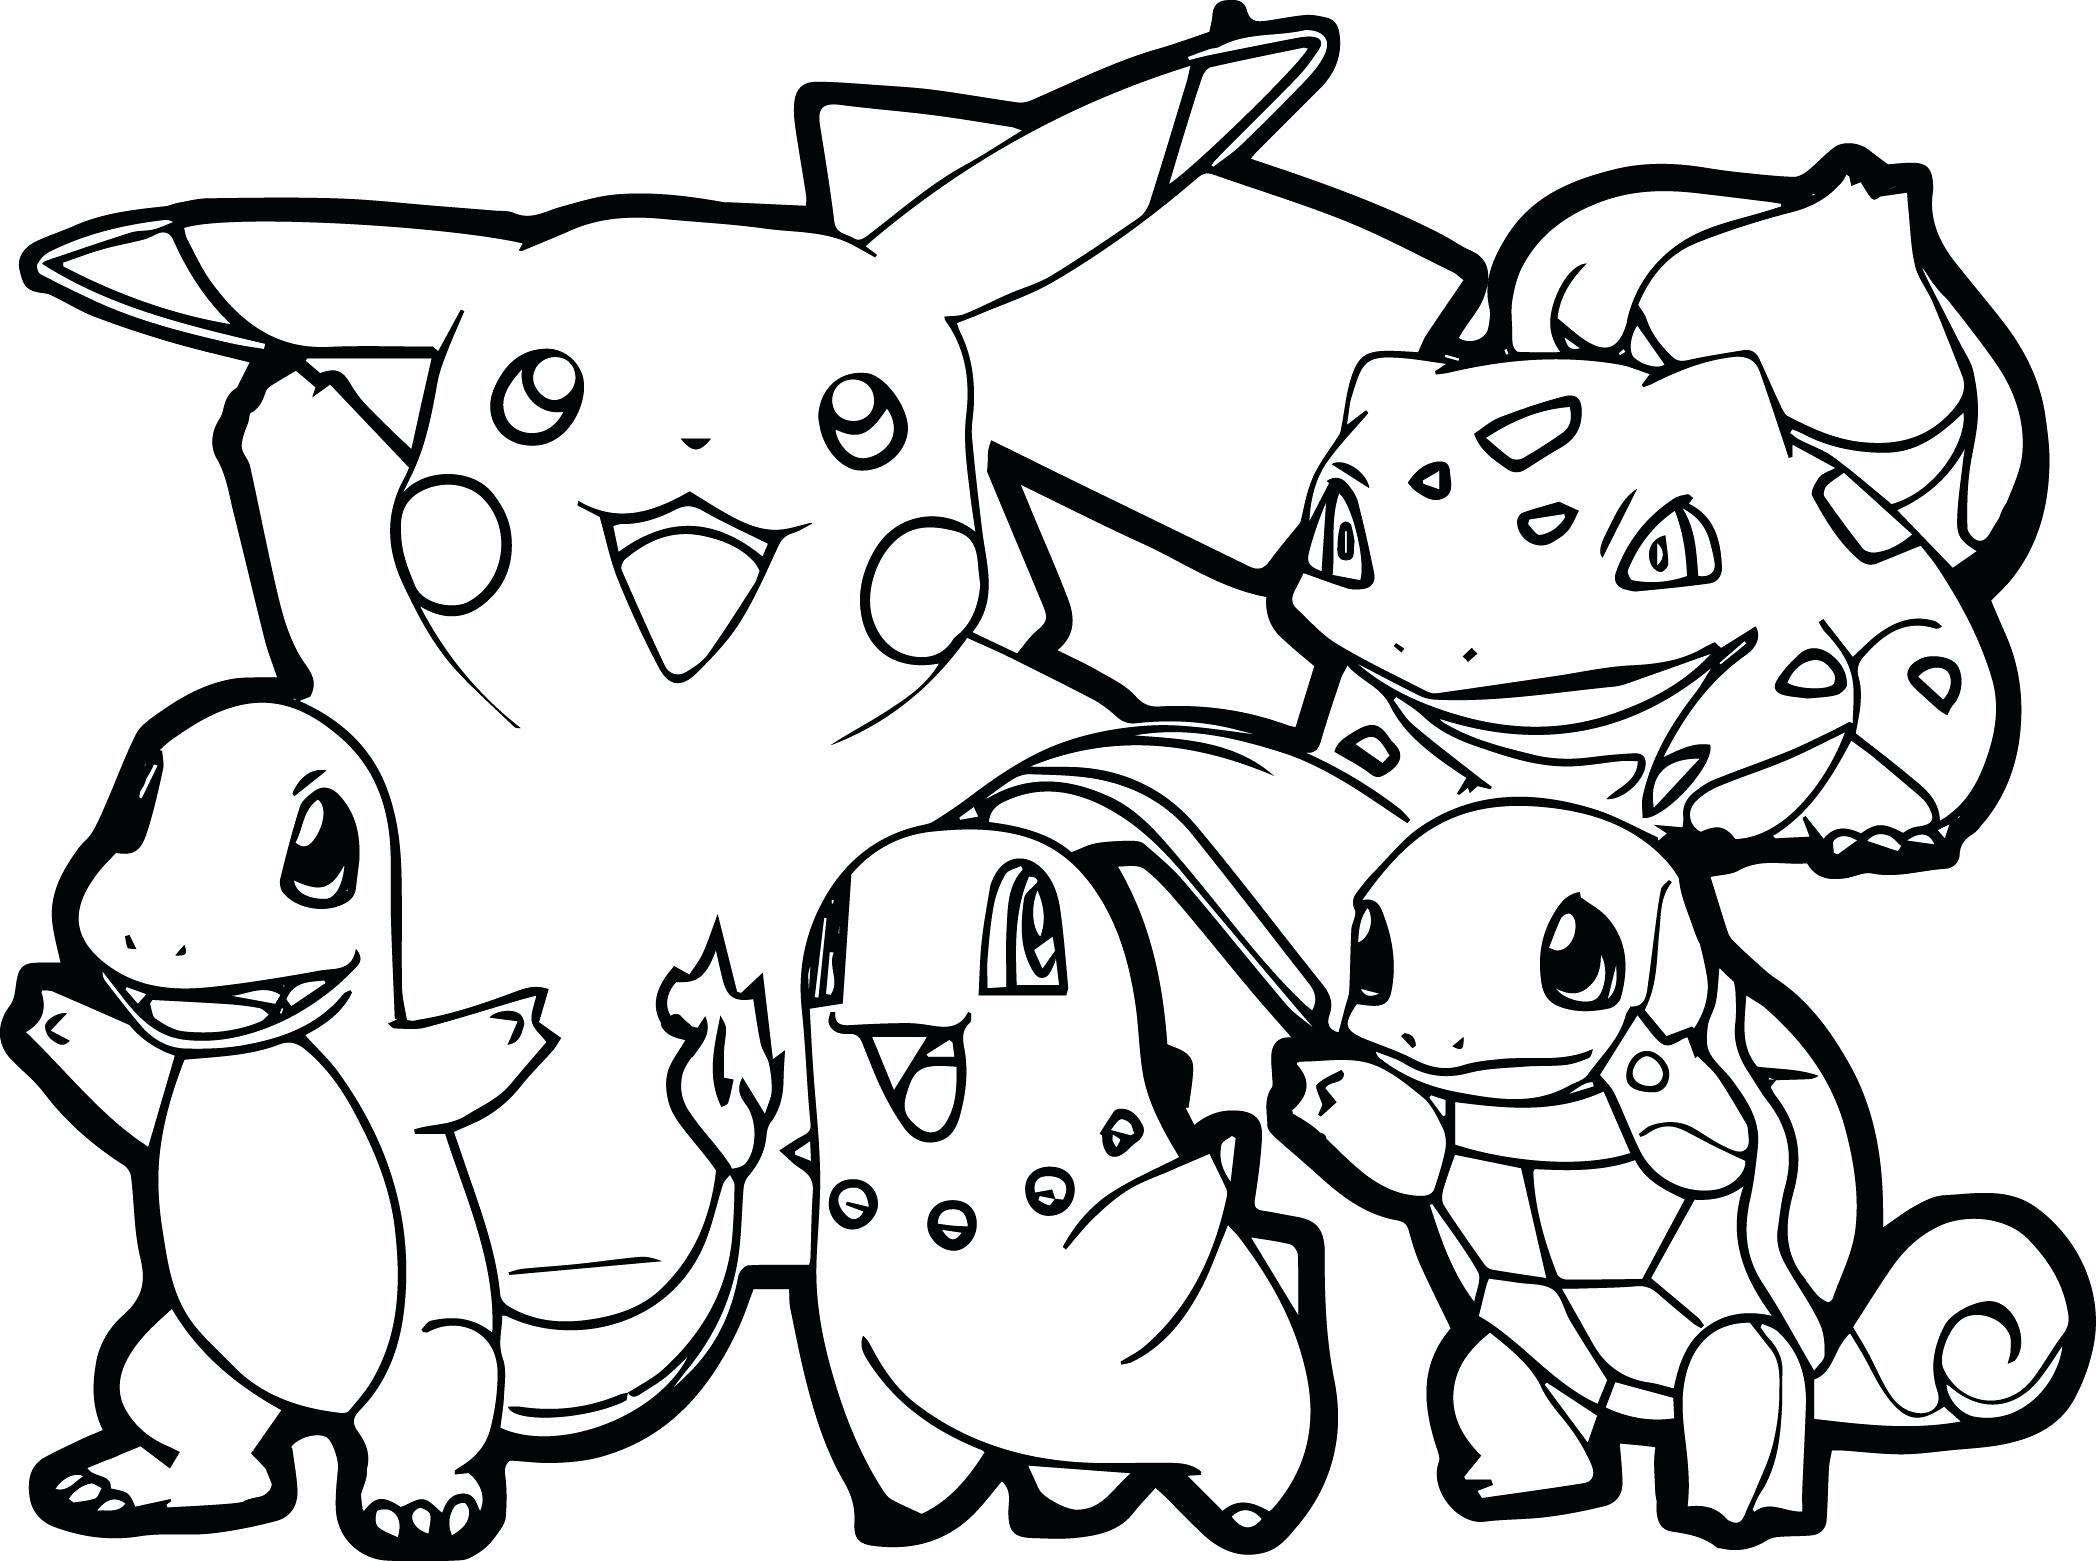 2096x1561 Pokemon Arceus Printable Coloring Pages Sheets Image Free Luxury